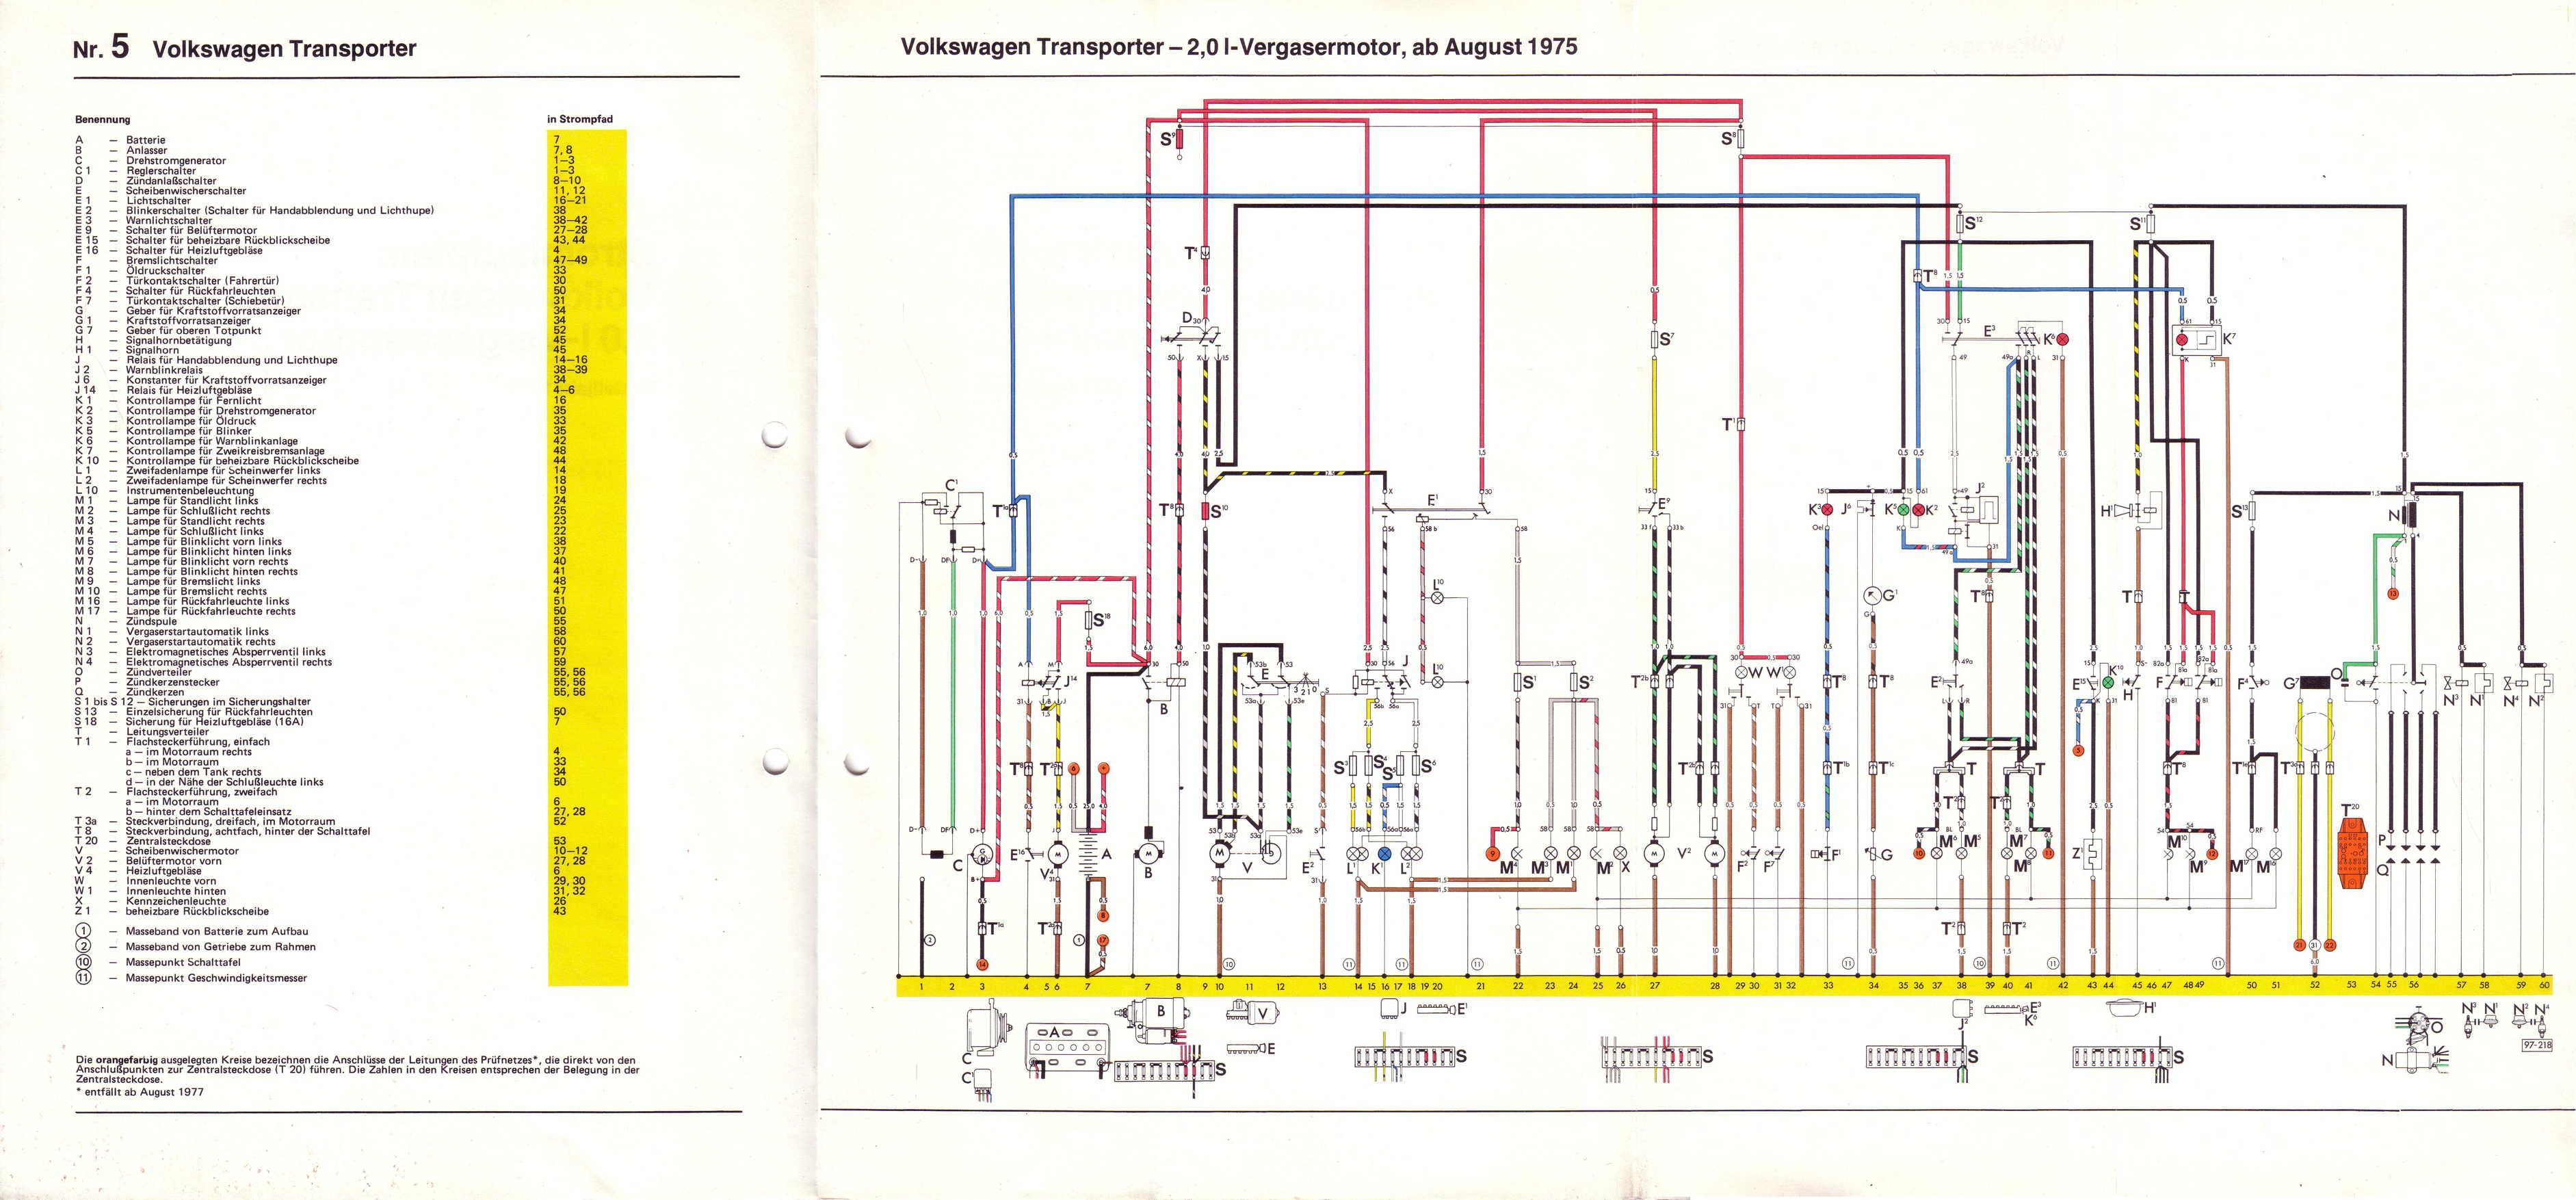 1975 08 vw t2 2l wiring diagram?resize\\\\\\\\\\\\\\\\\\\\\\\\\\\\\\\\\\\\\\\\\\\\\\\=665%2C310 gfs retrotron wiring diagrams telecaster wiring diagrams gfs crunchy rails wiring diagram at gsmx.co